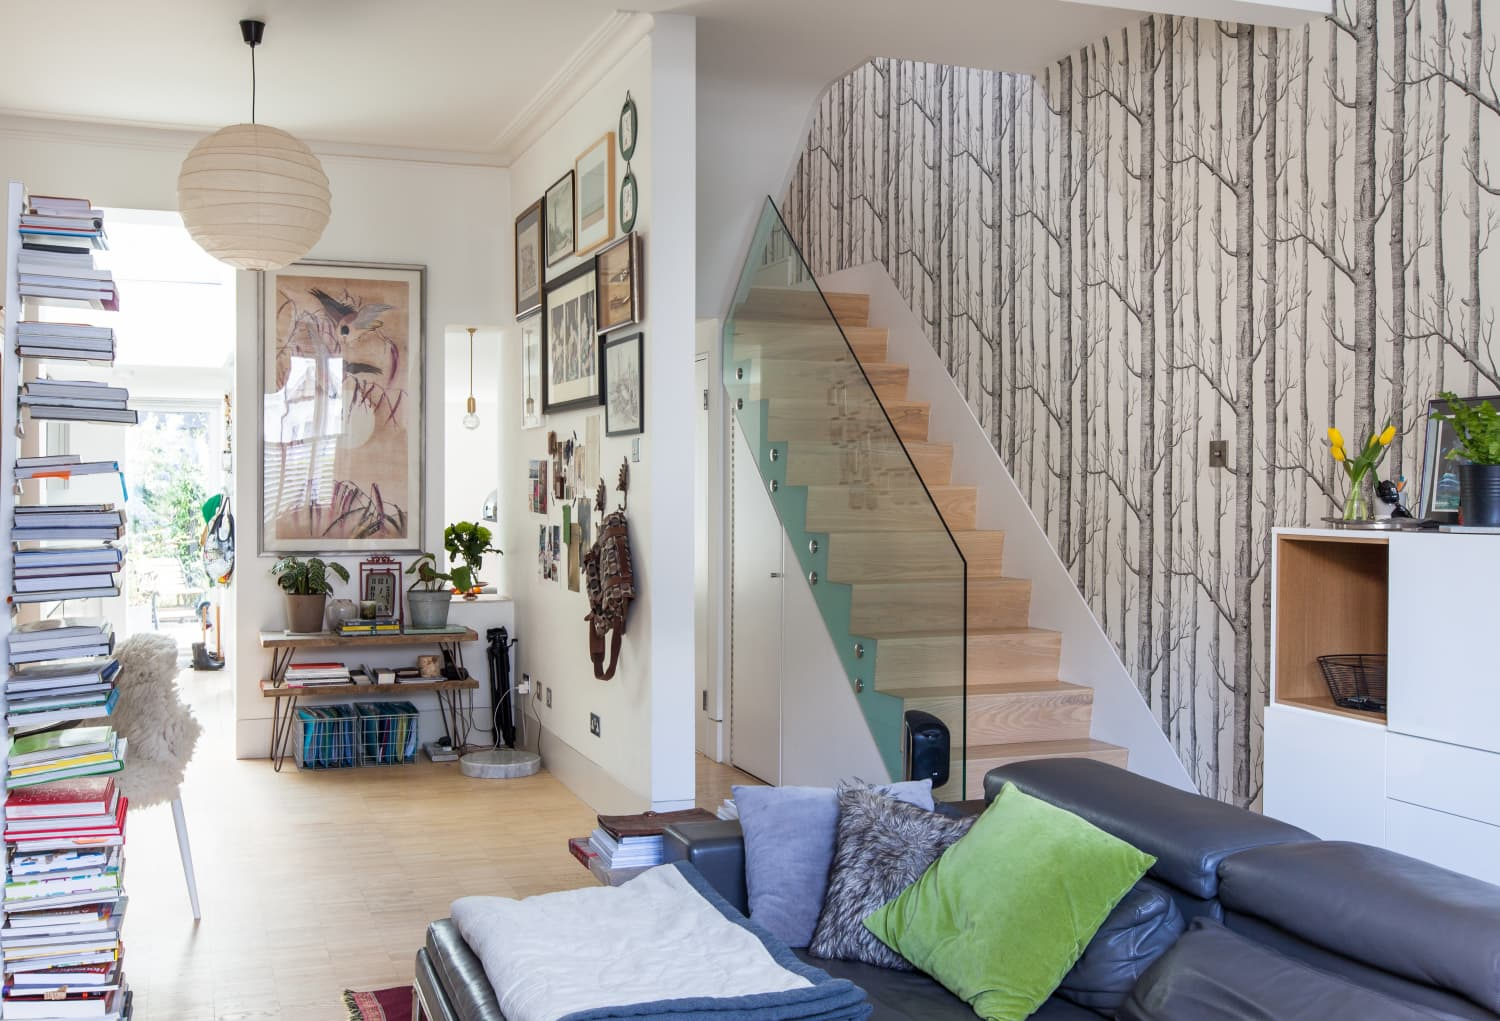 excellent mid century modern bedroom referencias san and | 10 Excellent Sources for Buying Birch Tree Wallpaper ...